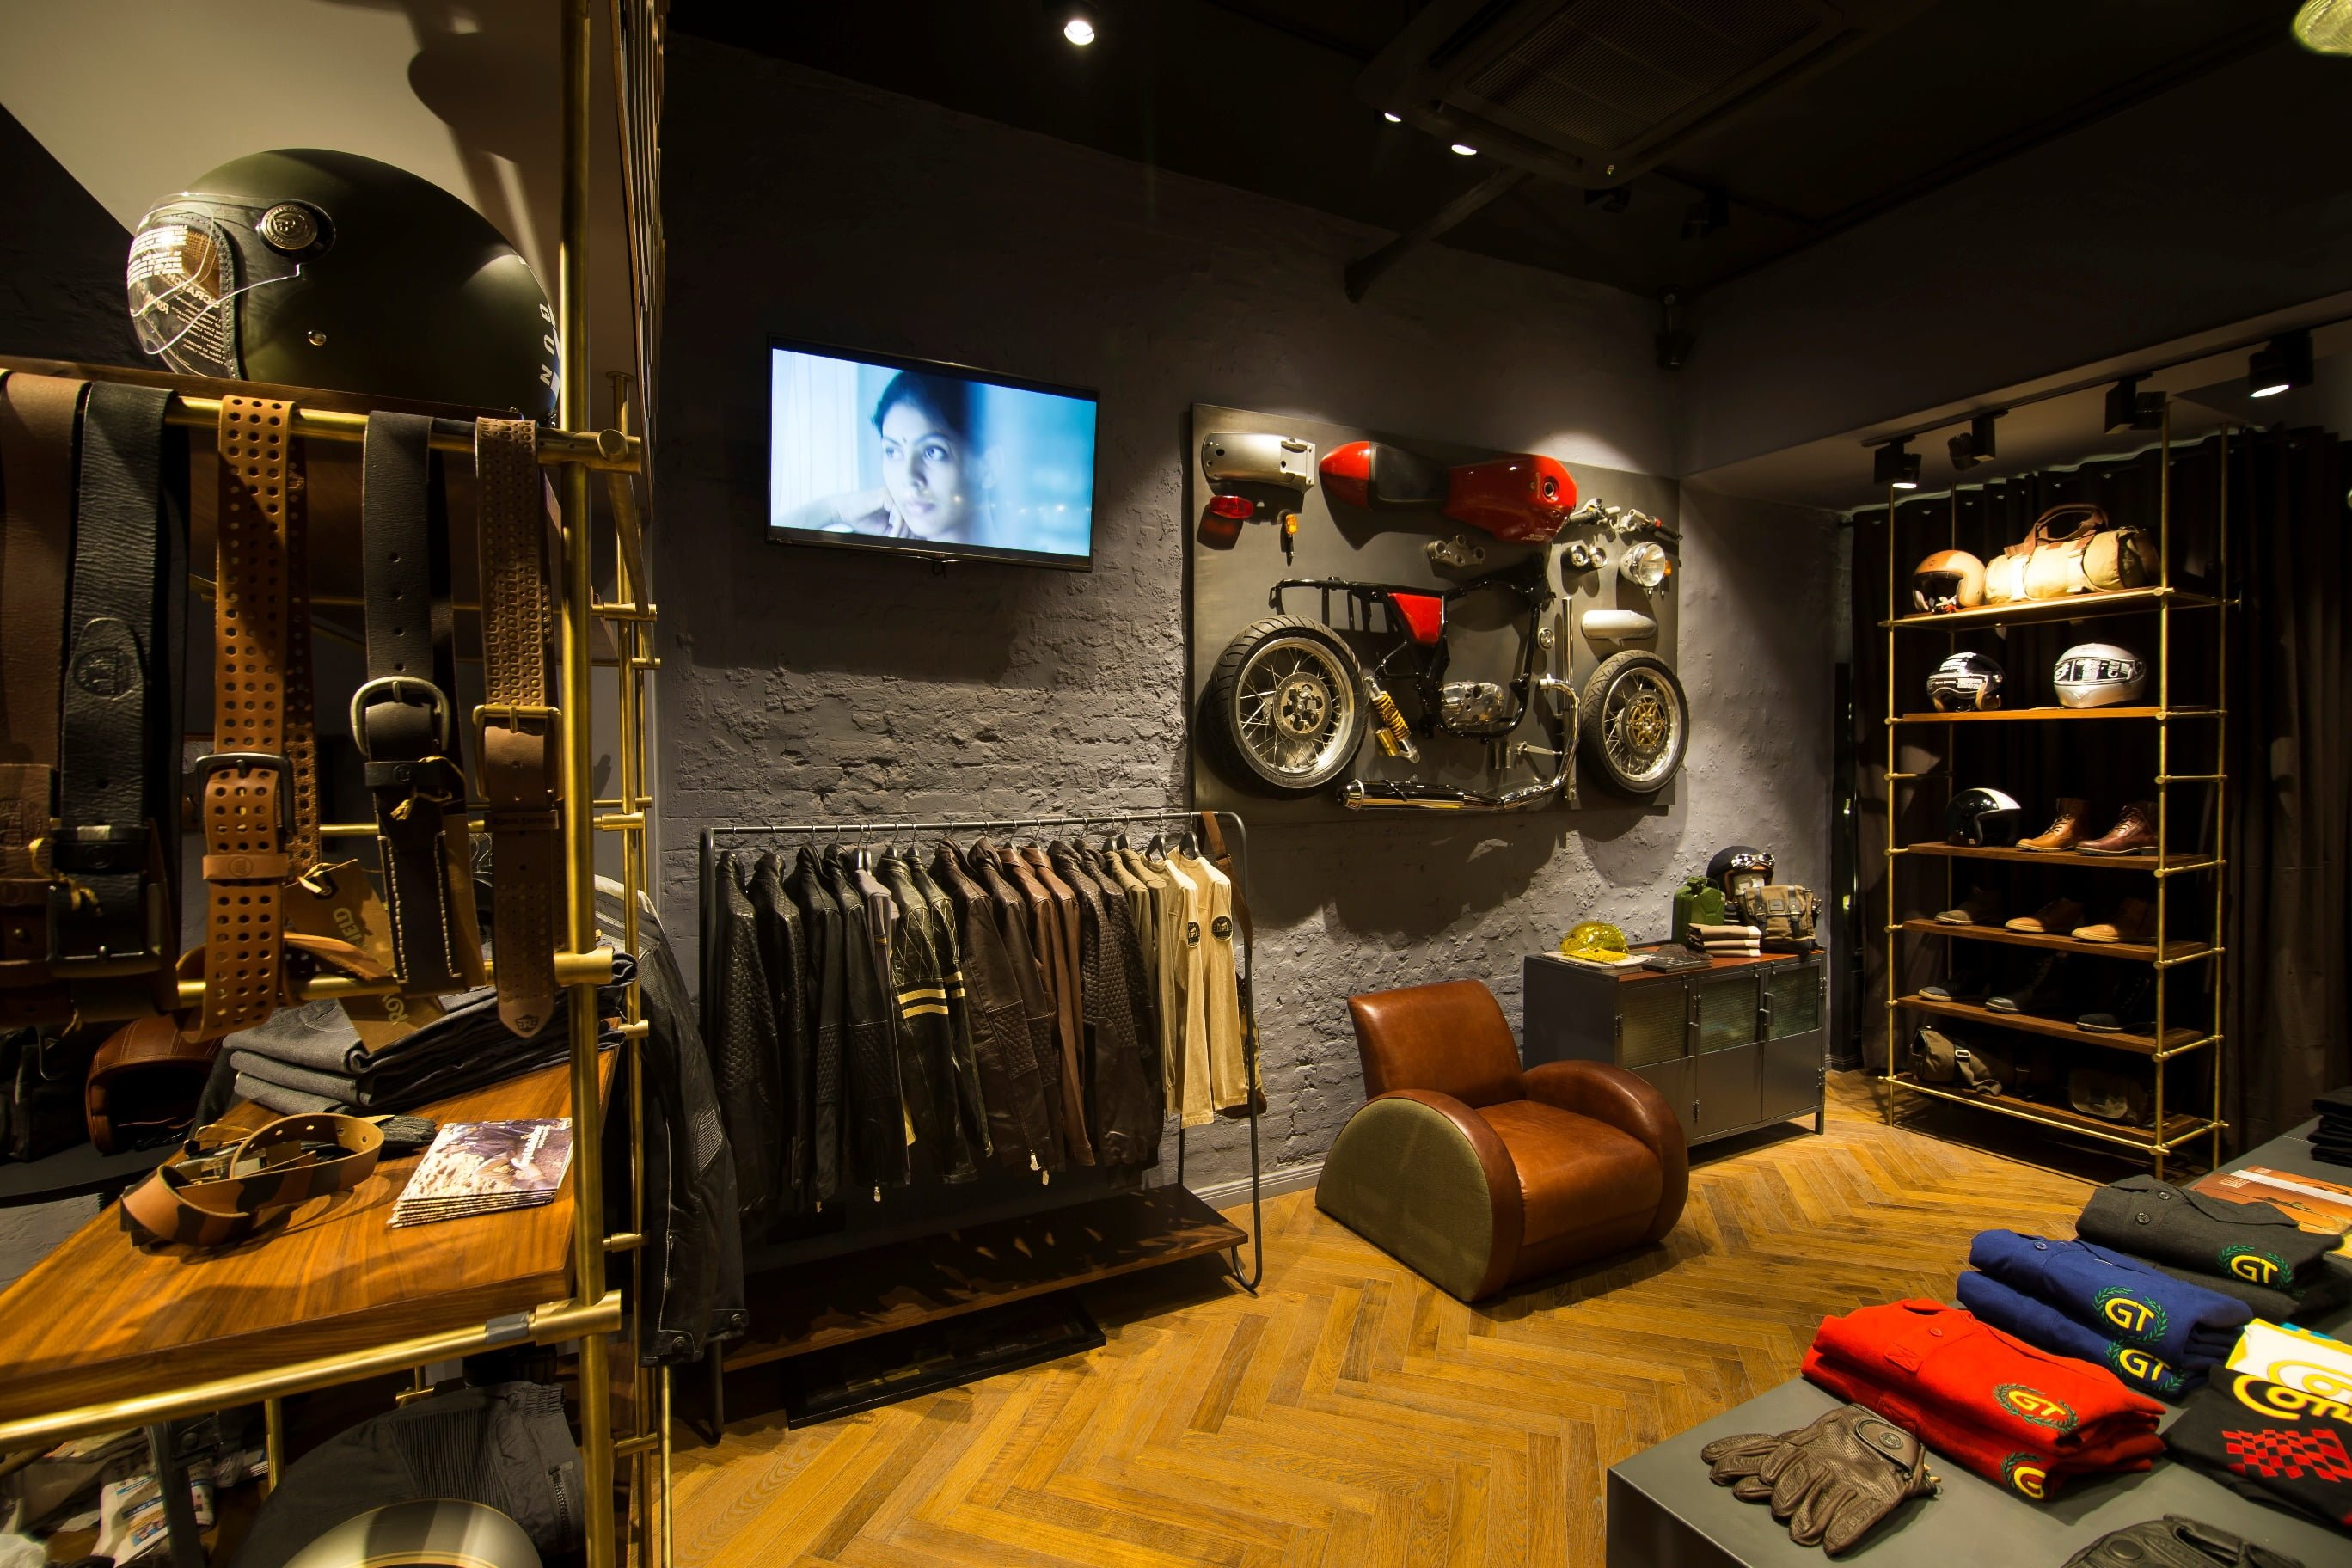 royal enfield limited edition motorcycles and biking gear. Black Bedroom Furniture Sets. Home Design Ideas